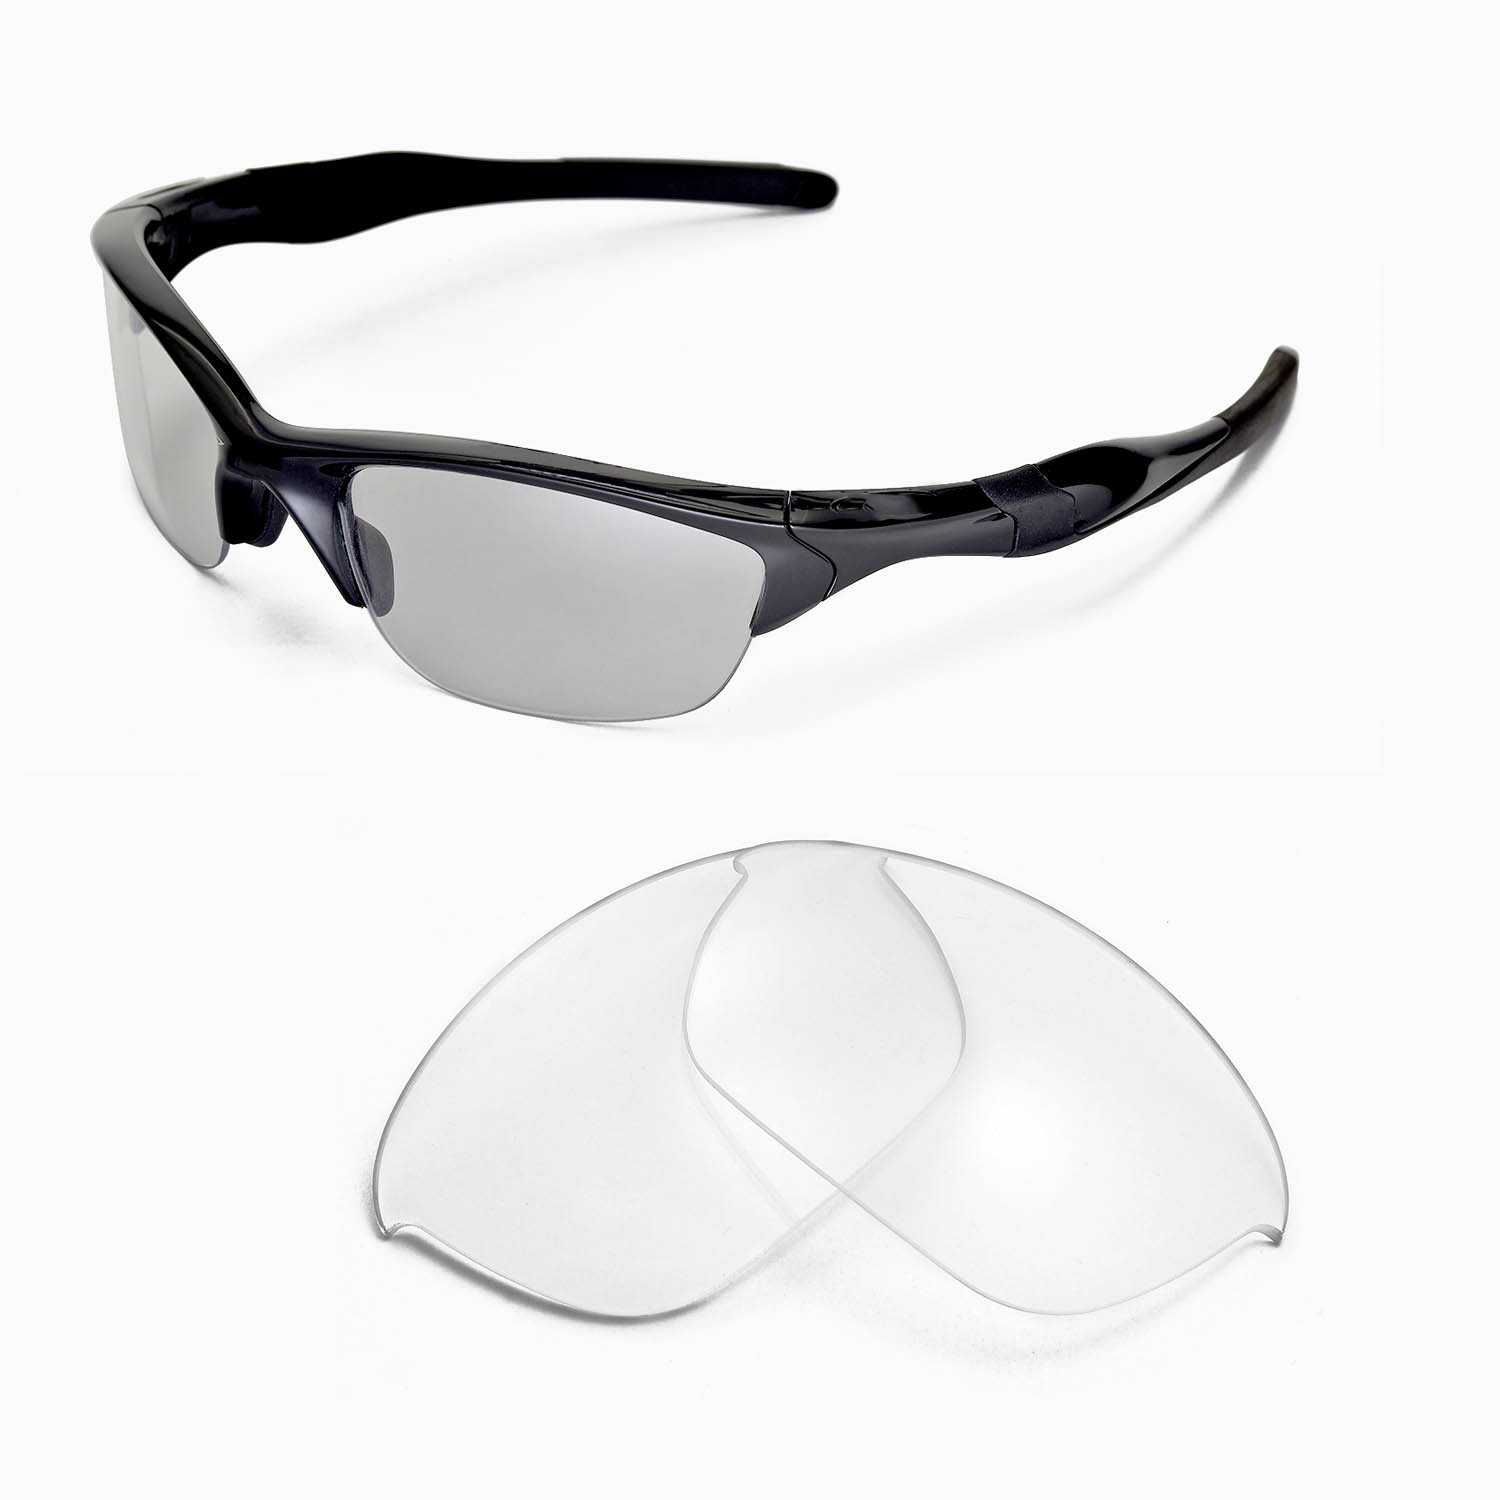 ebbc021f10 Details about New WL Clear Replacement Lenses For Oakley Half Jacket 2.0  Sunglasses